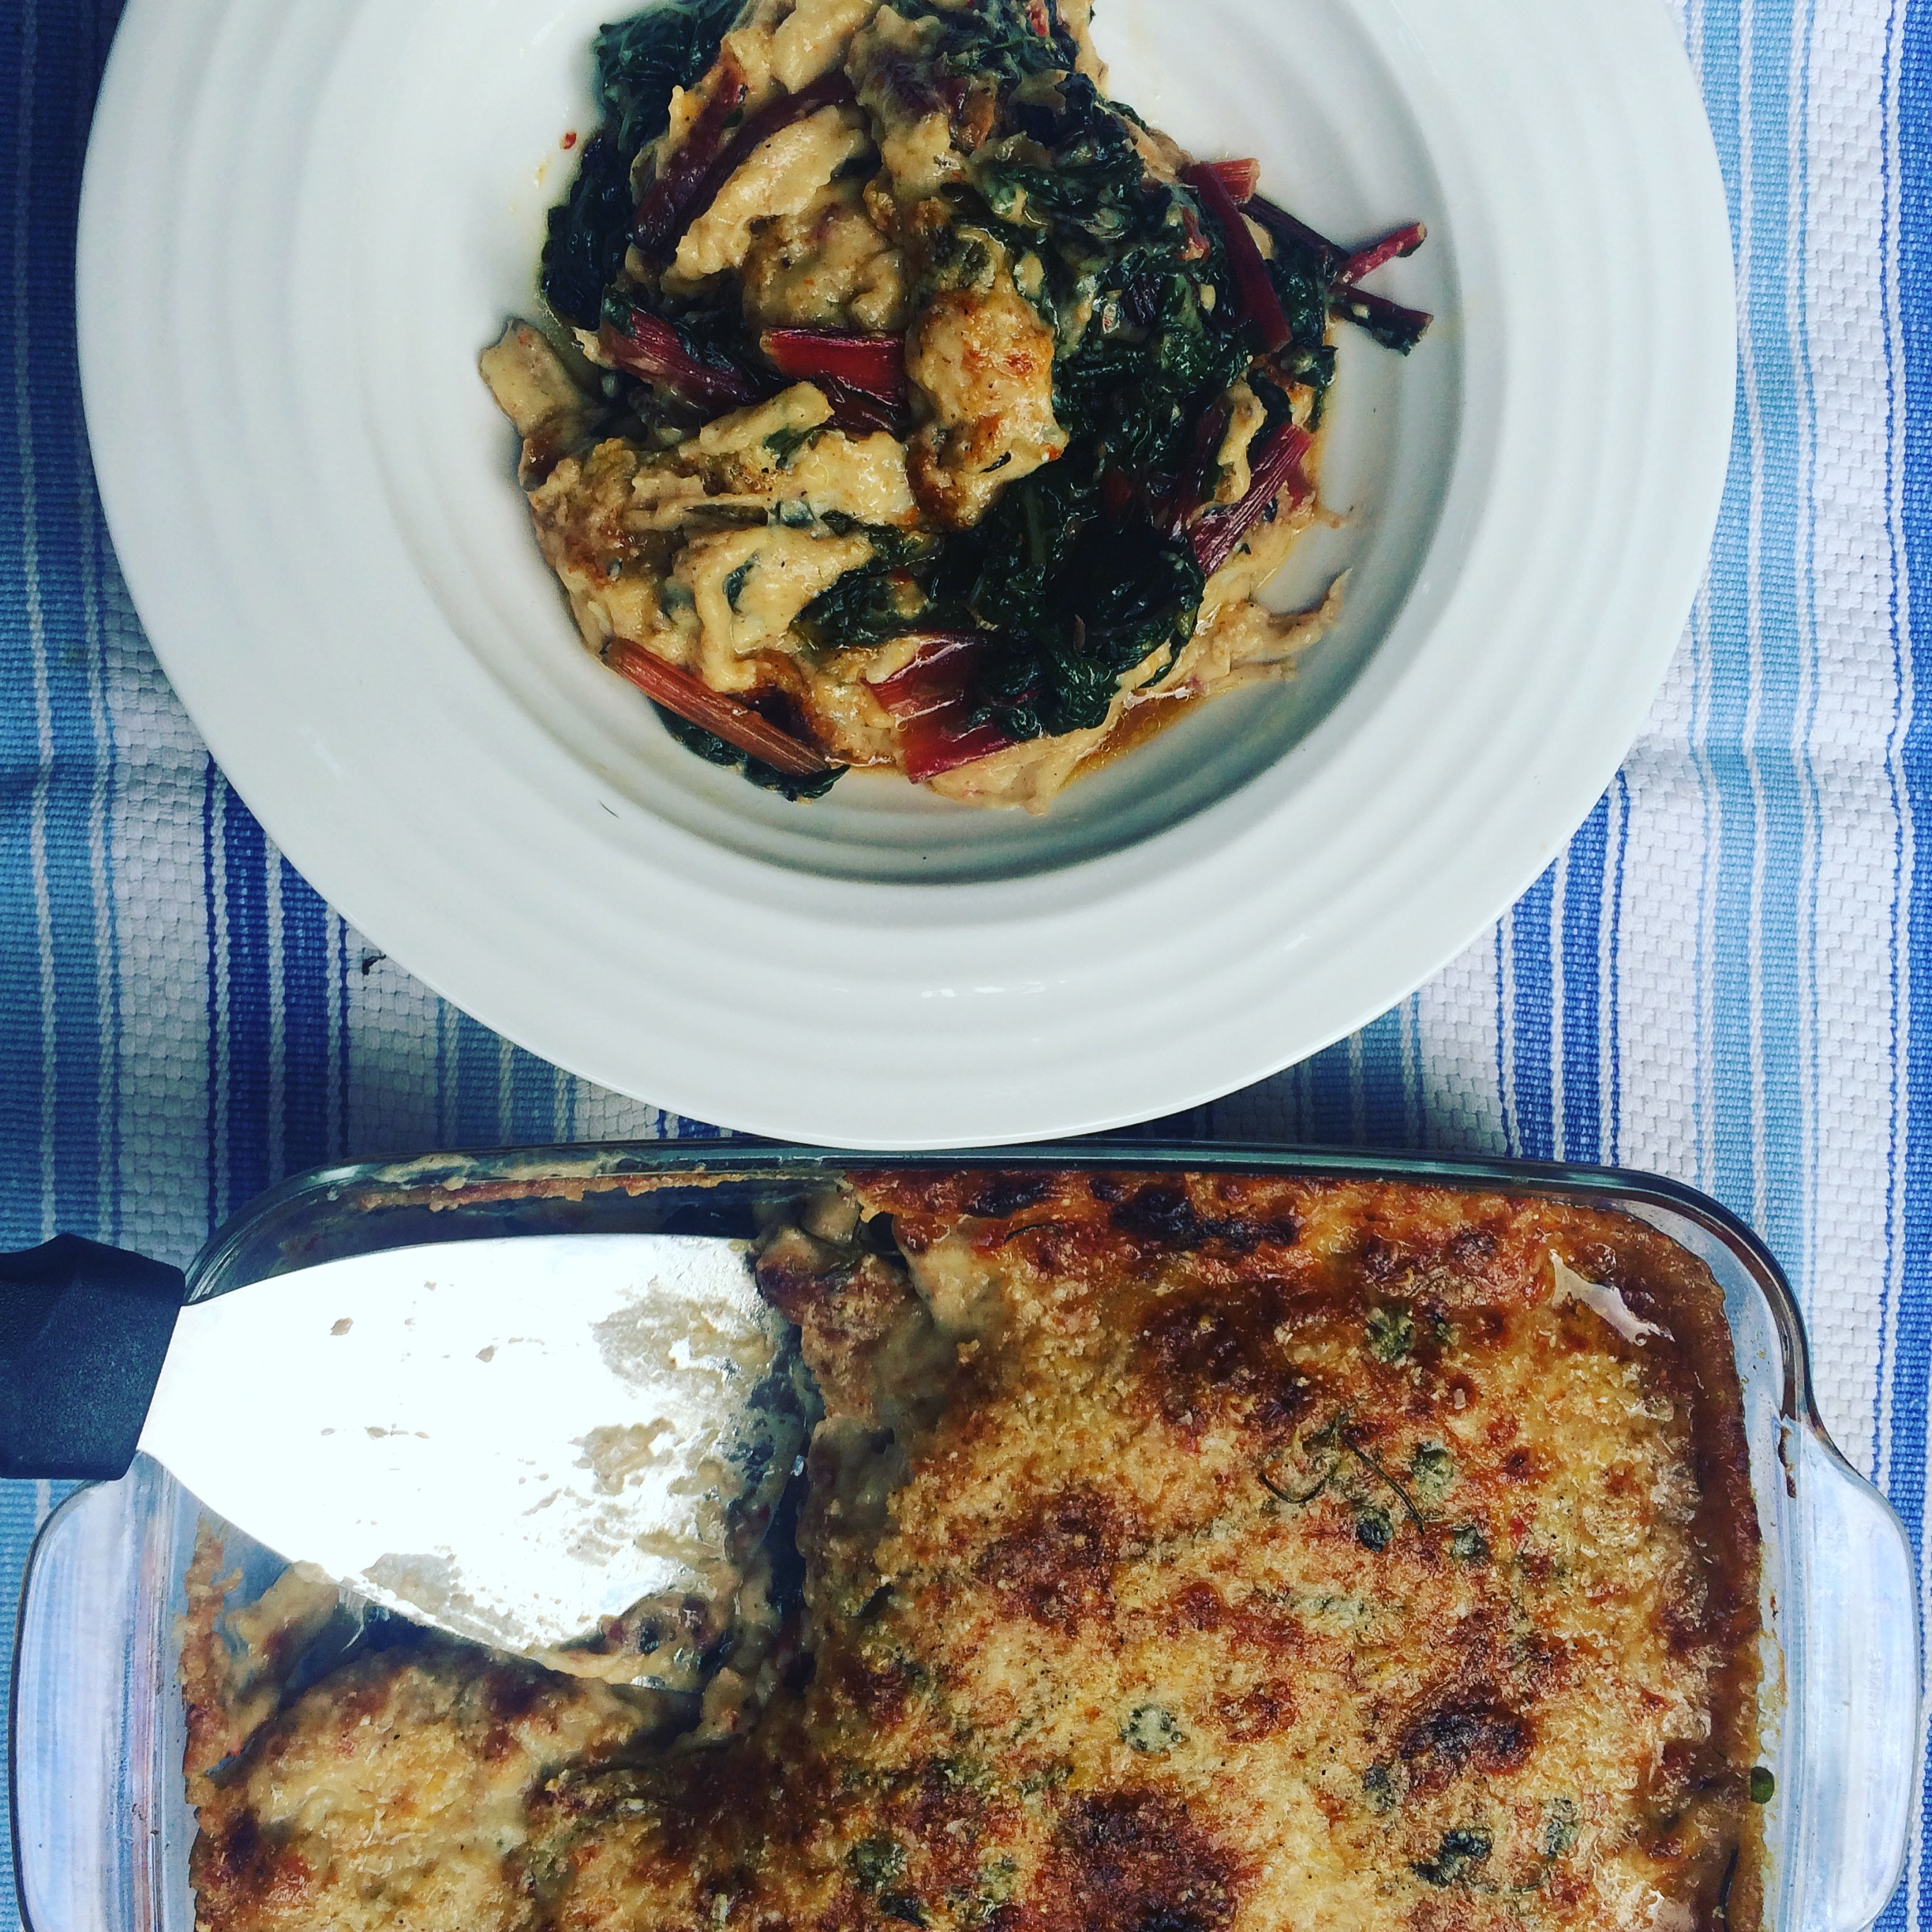 Chard with Parmesan gratin top, spelt bechamel, anchovies, marjoram and garlic